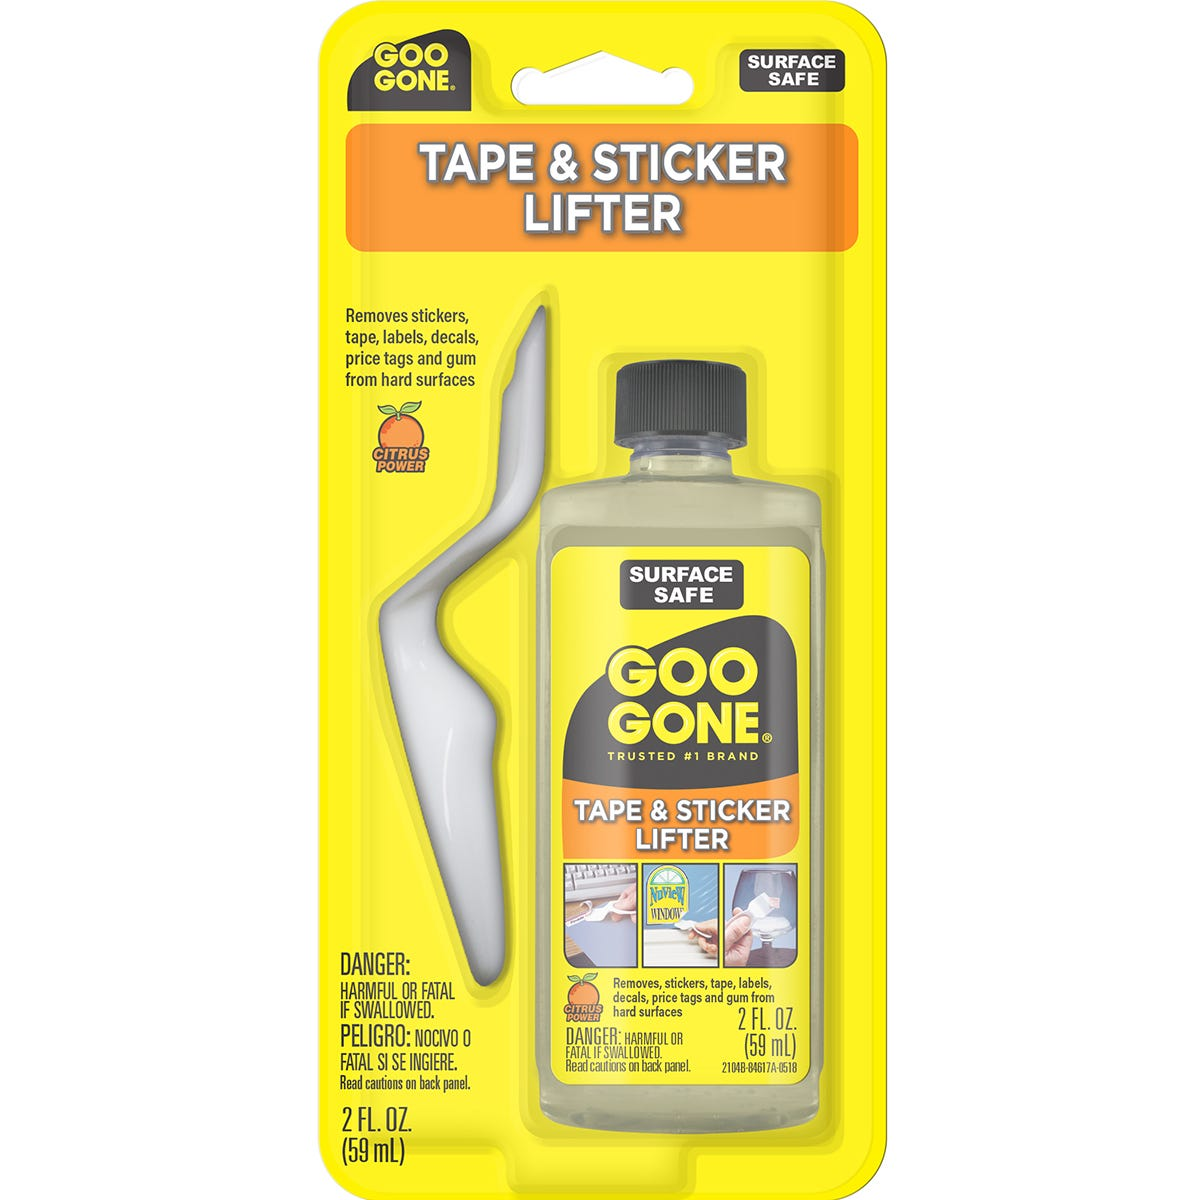 Goo Gone Tape & Sticker Lifter